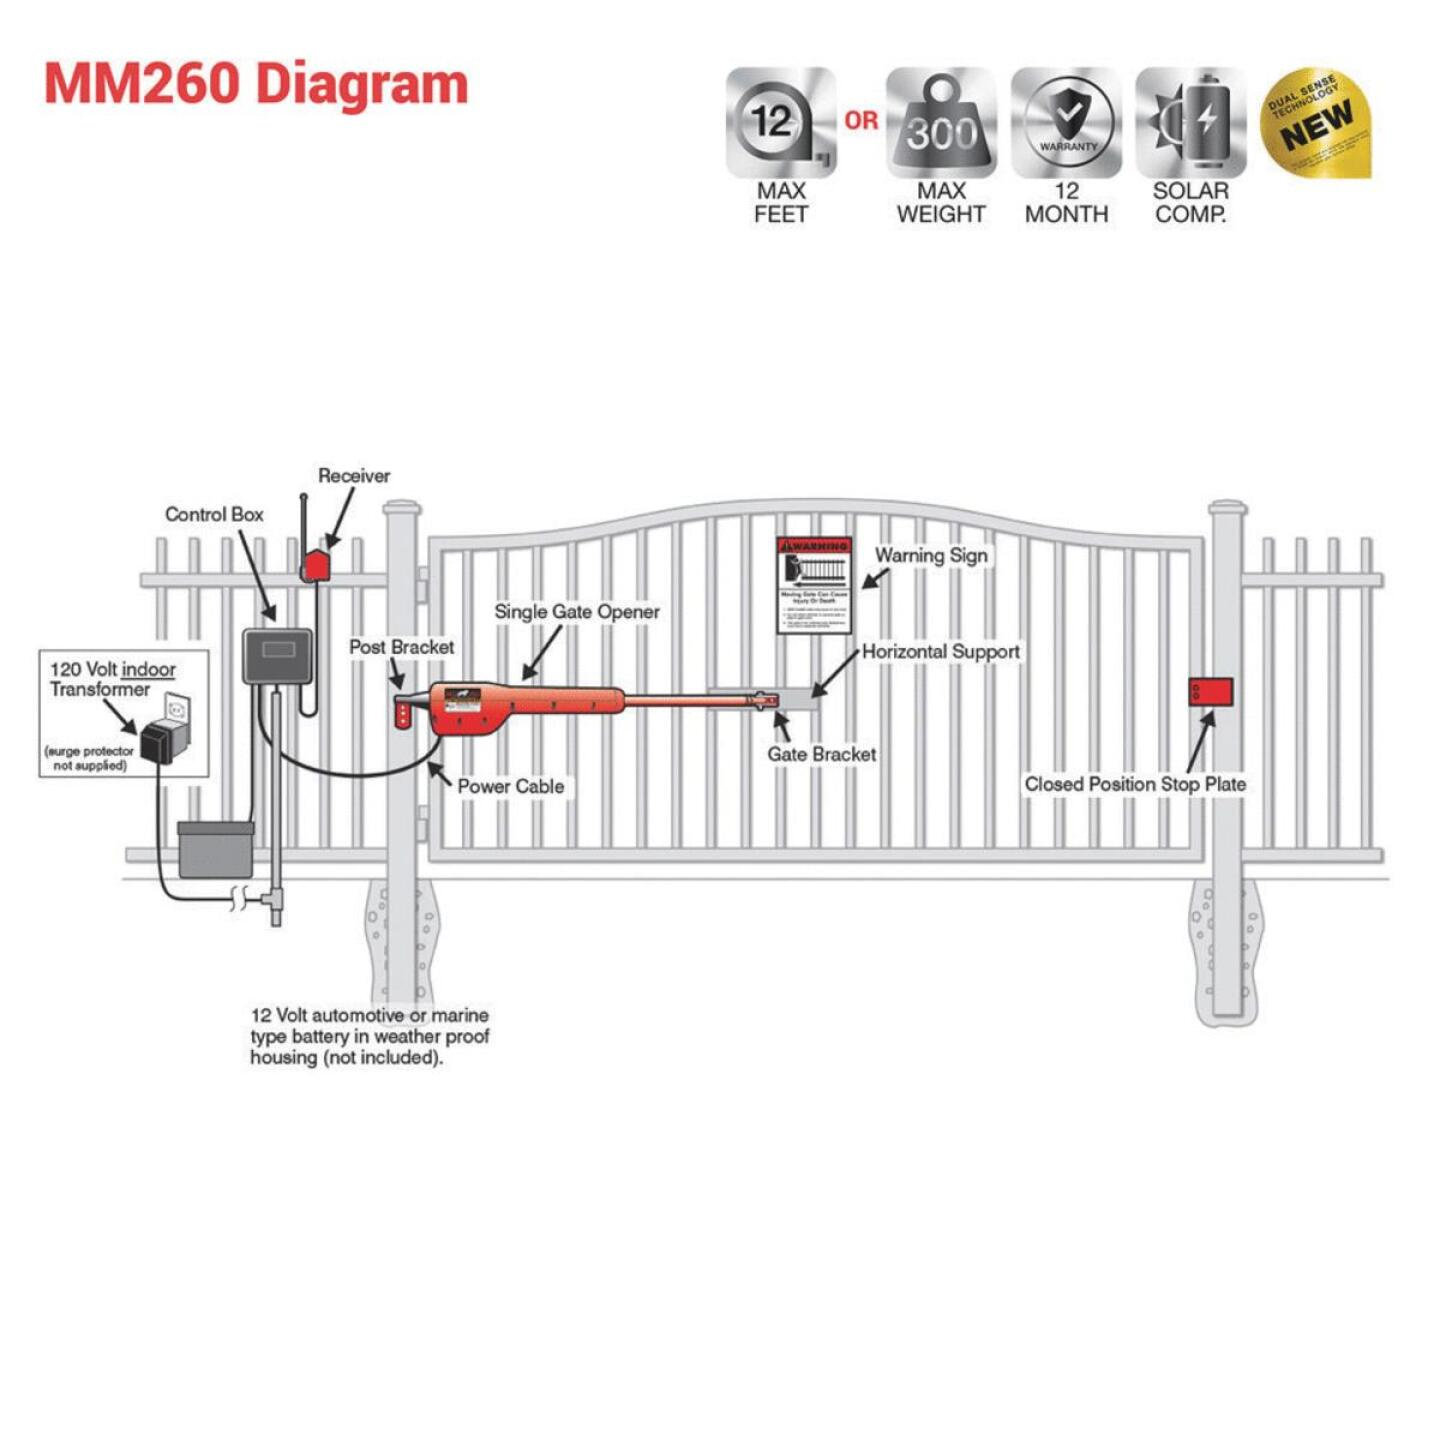 Mighty Mule MM271 12 Ft. 300 Lb. Single Gate Opener Kit Image 2